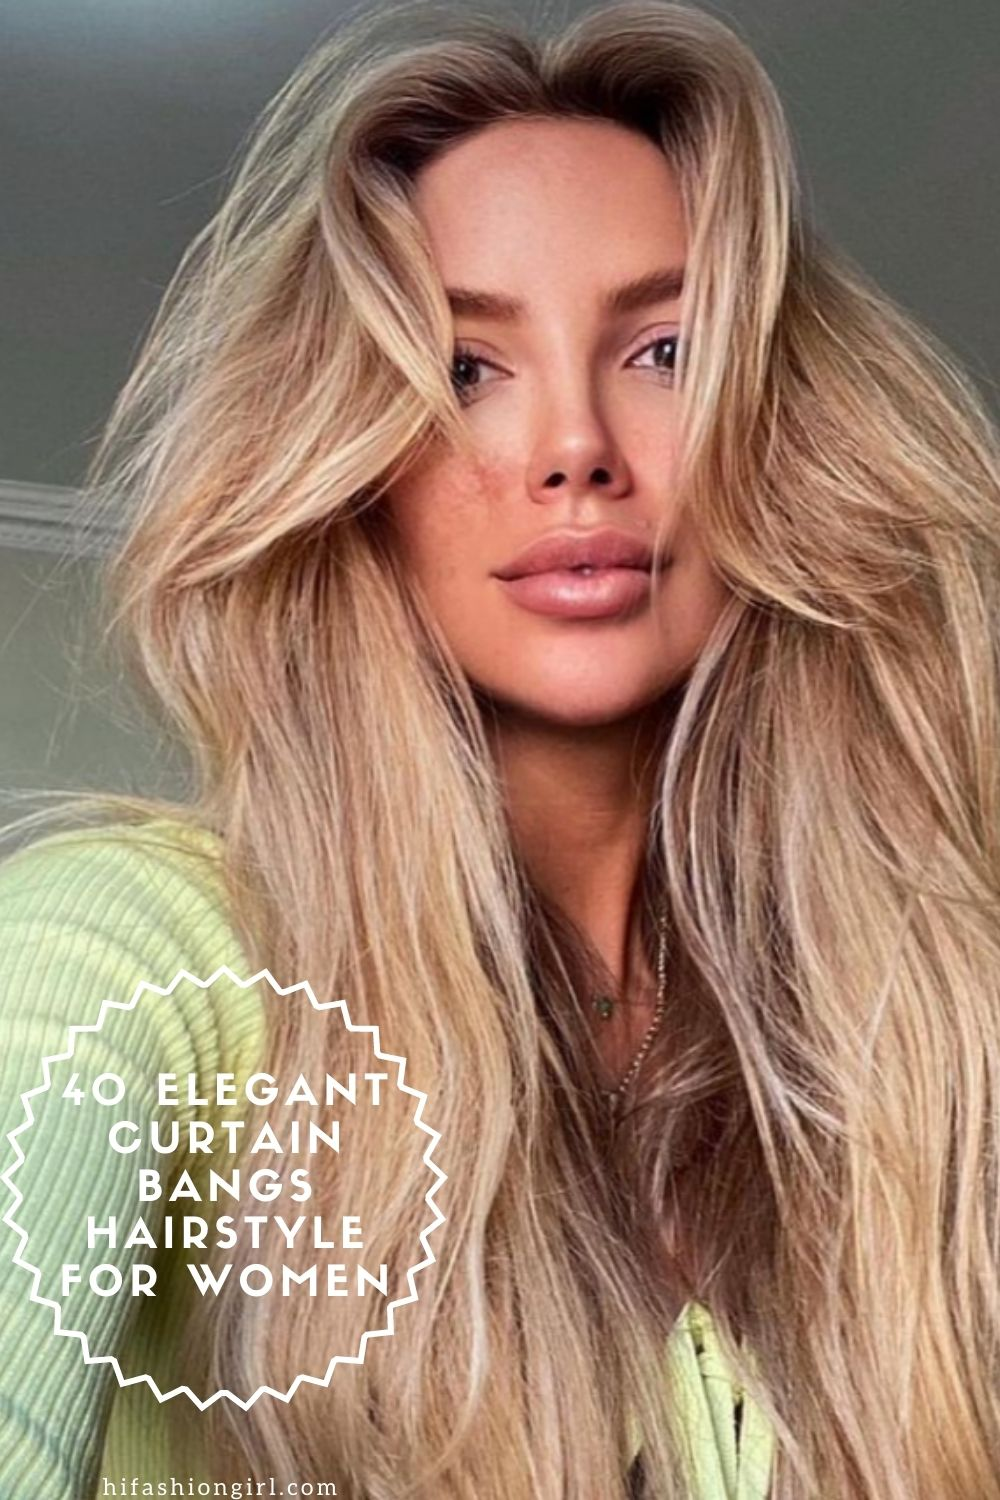 Curtain Bangs Hairstyle: 40 Pretty Hair Ideas For Girls To Try In Daily Life!